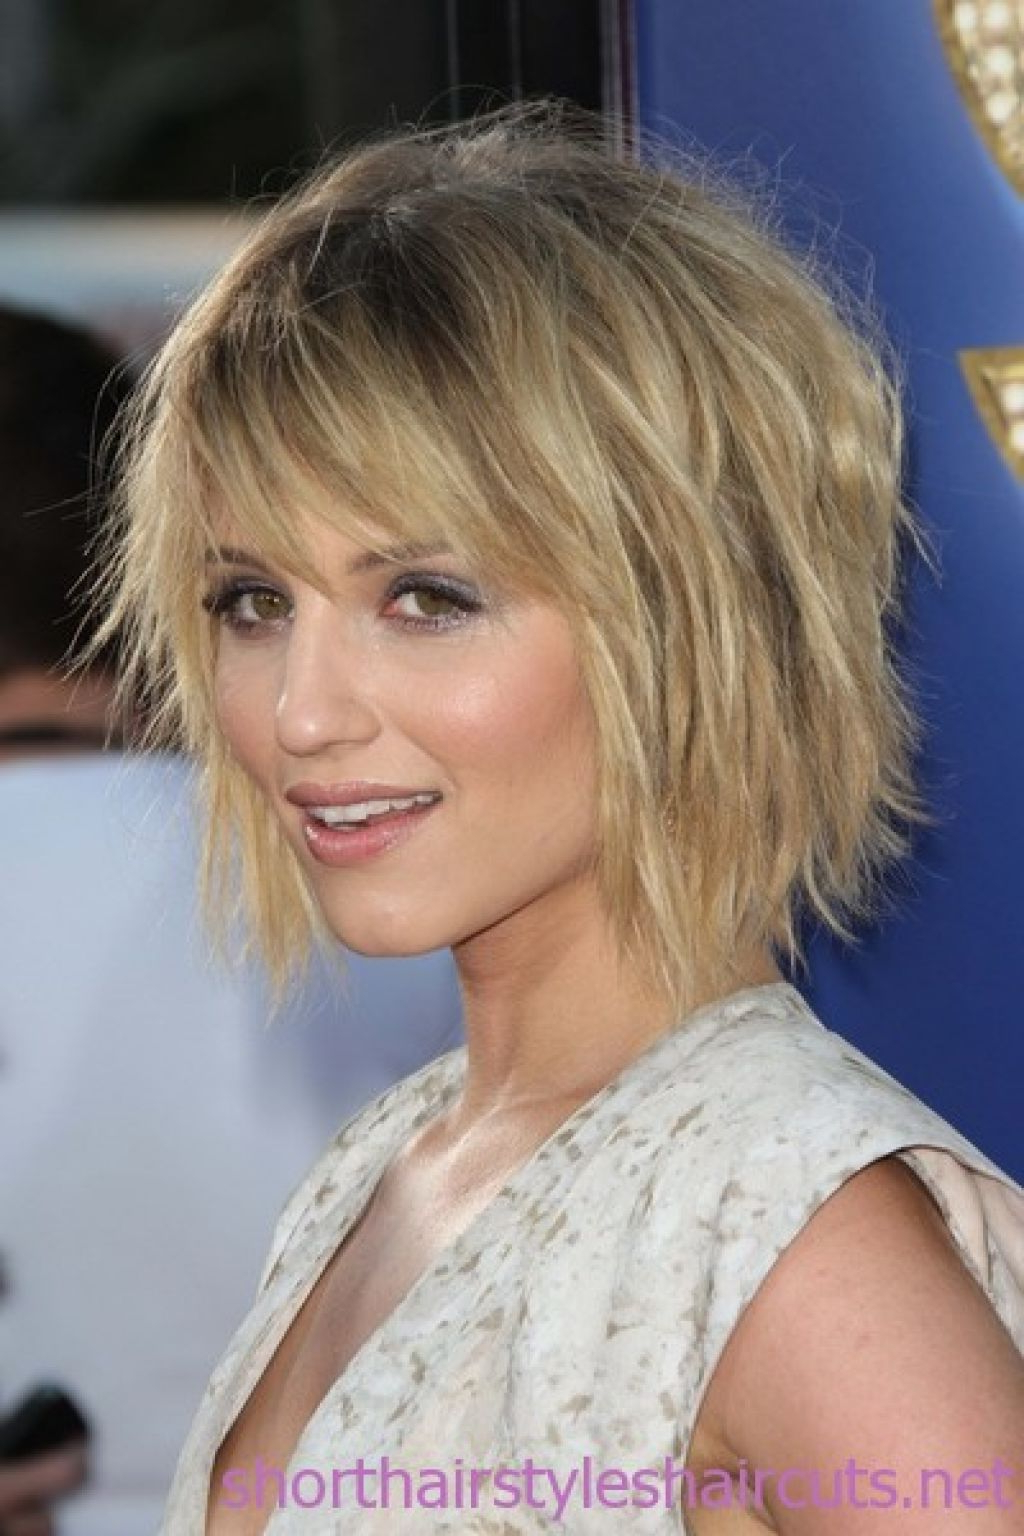 Pin On Hair In Jaw Length Choppy Bob Hairstyles With Bangs (Gallery 11 of 20)